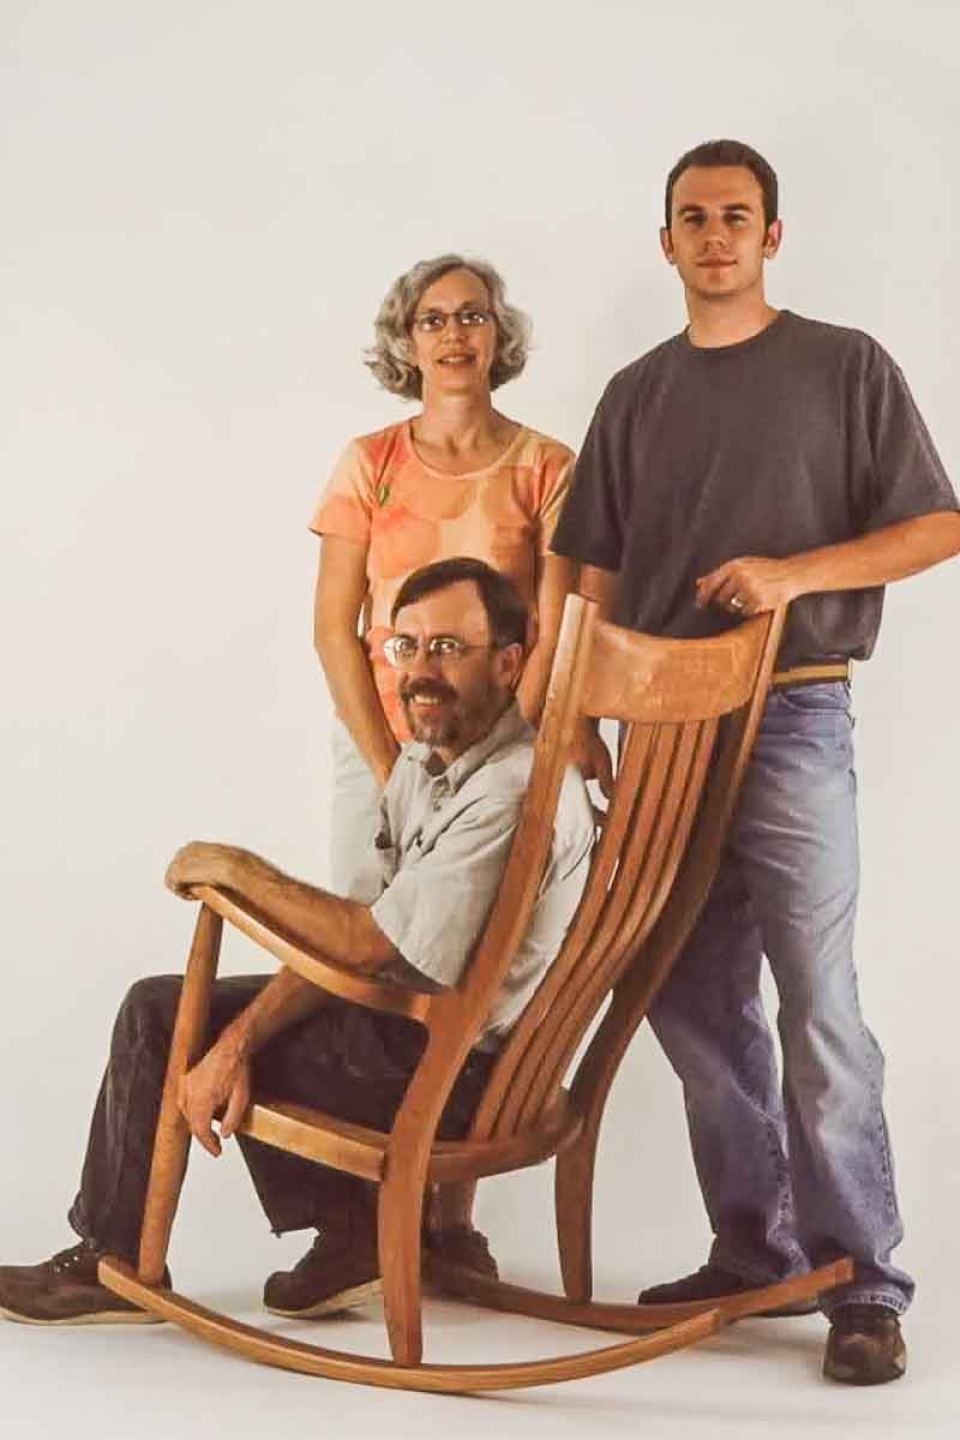 Austin, Gary, and Leslie and rocking chair